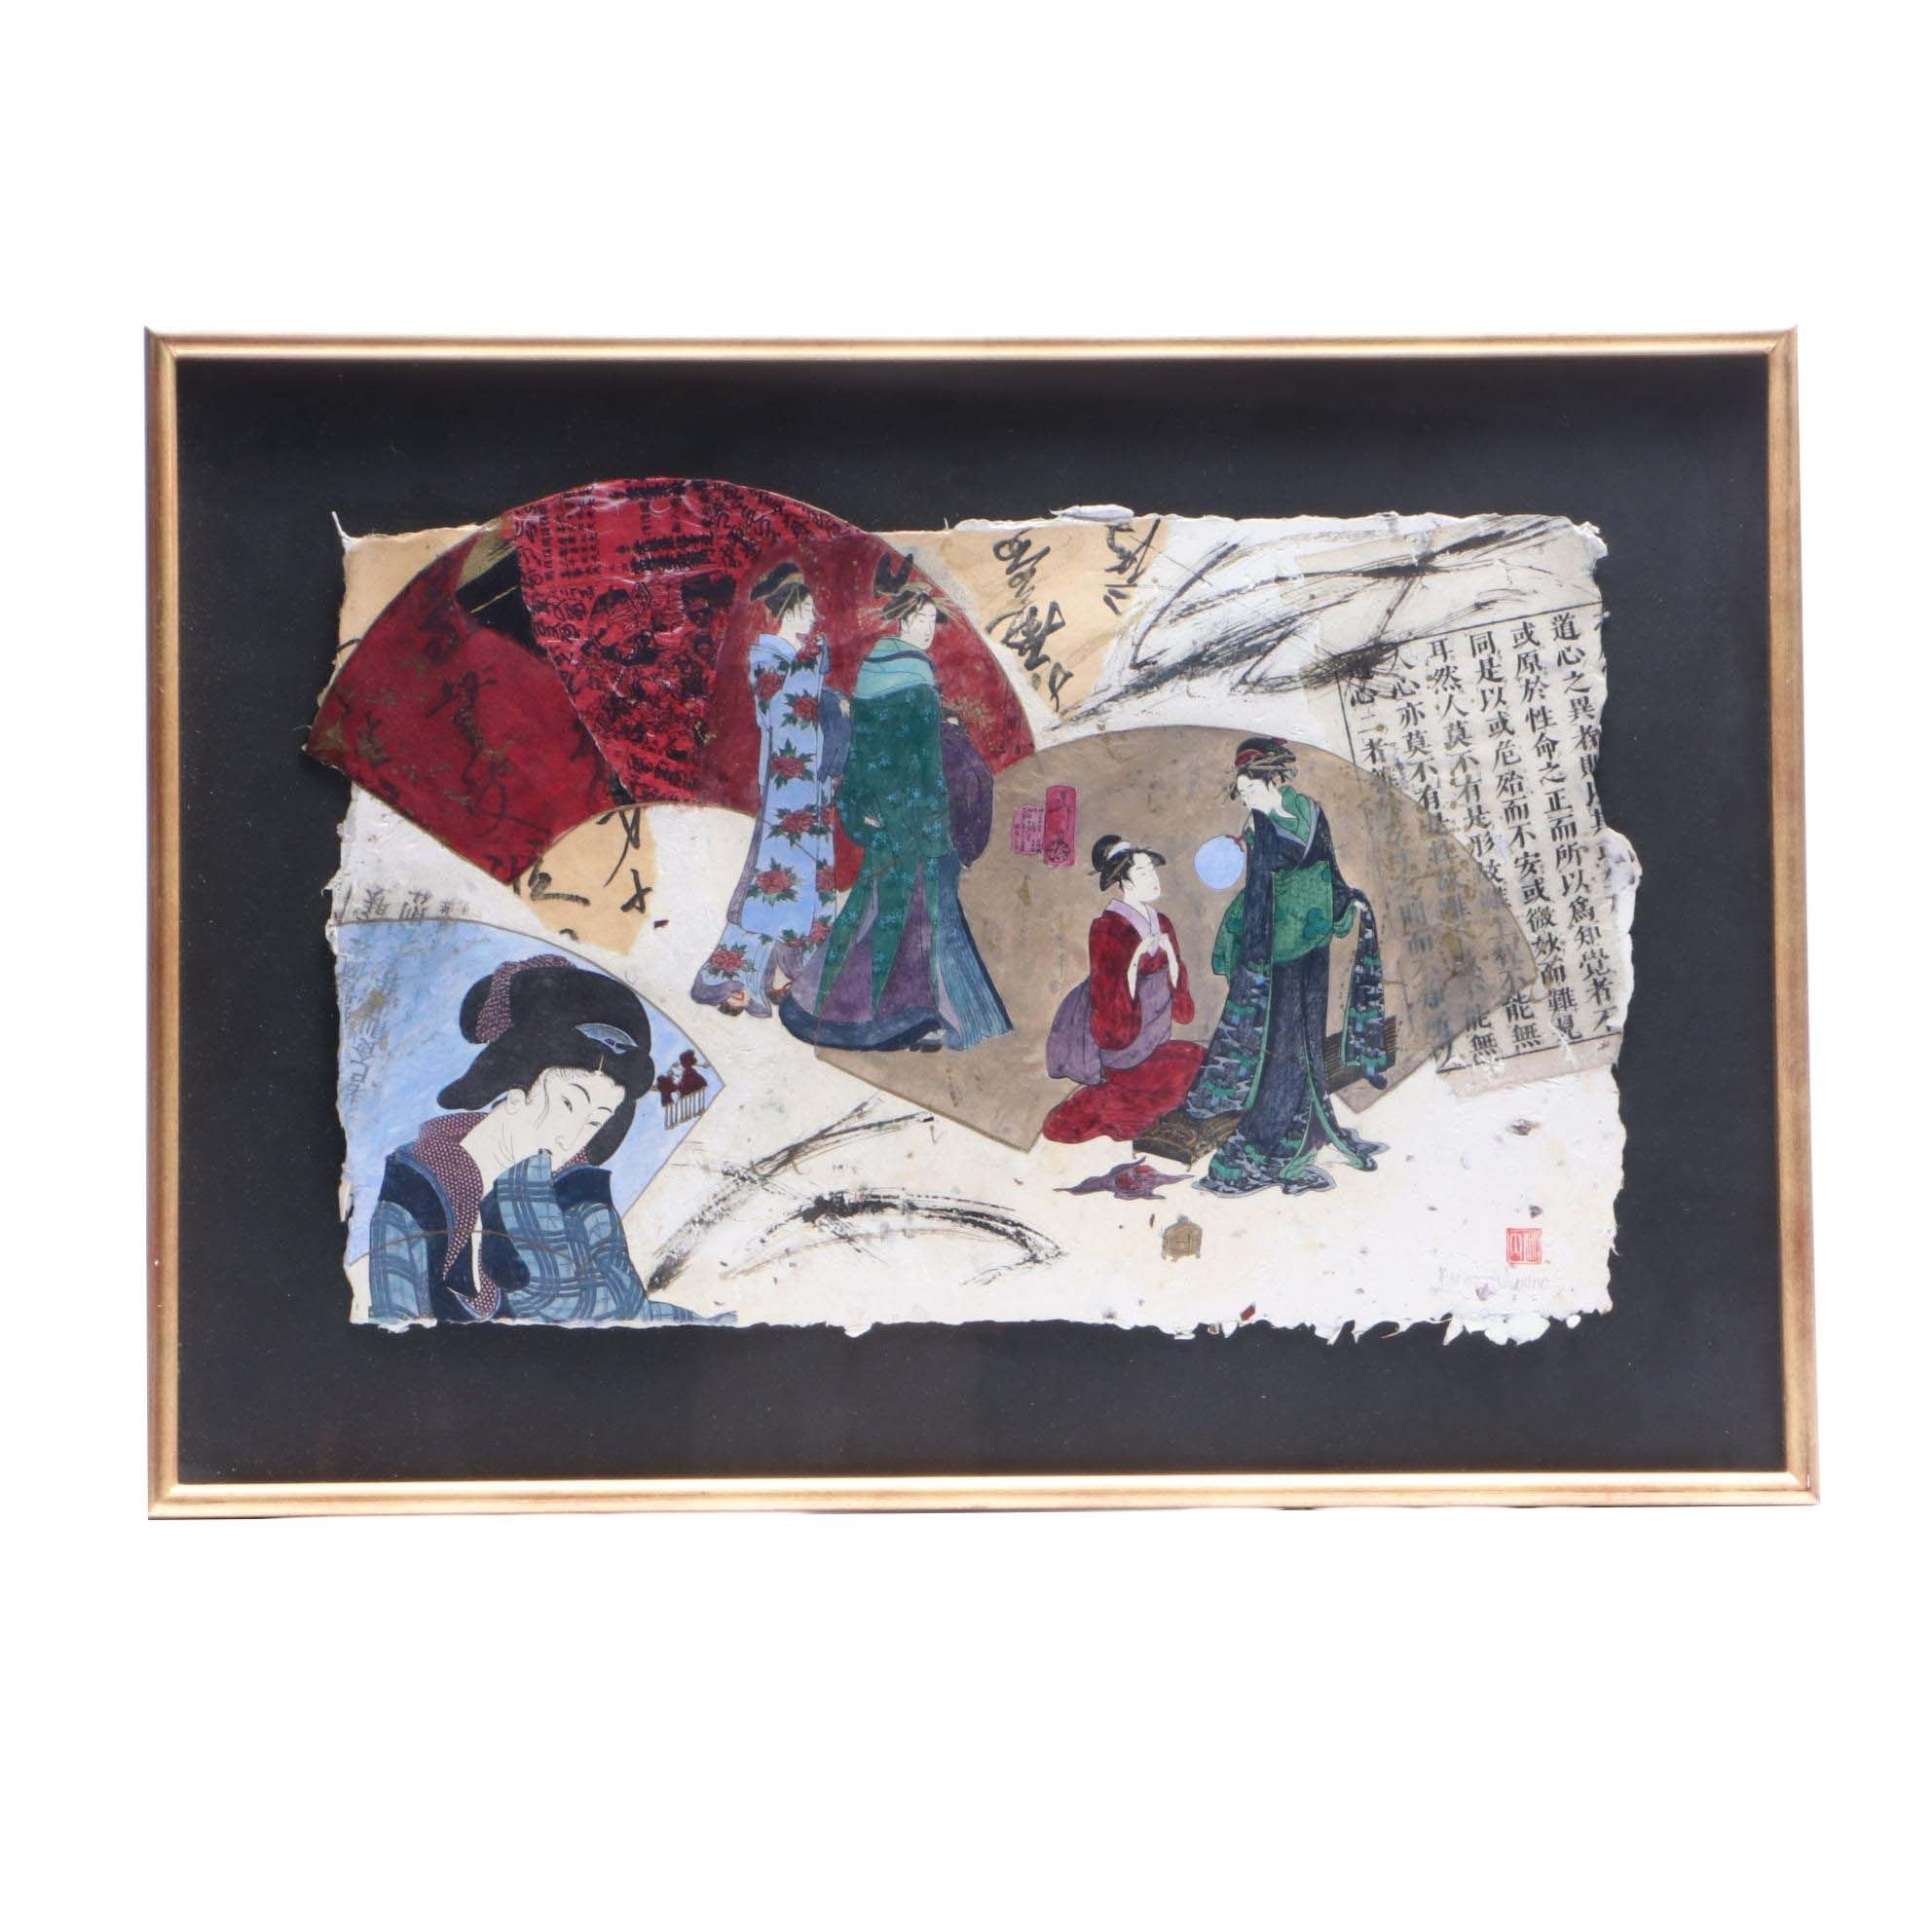 Signed Japanese Style Watercolor and Collage on Natural Fiber Paper